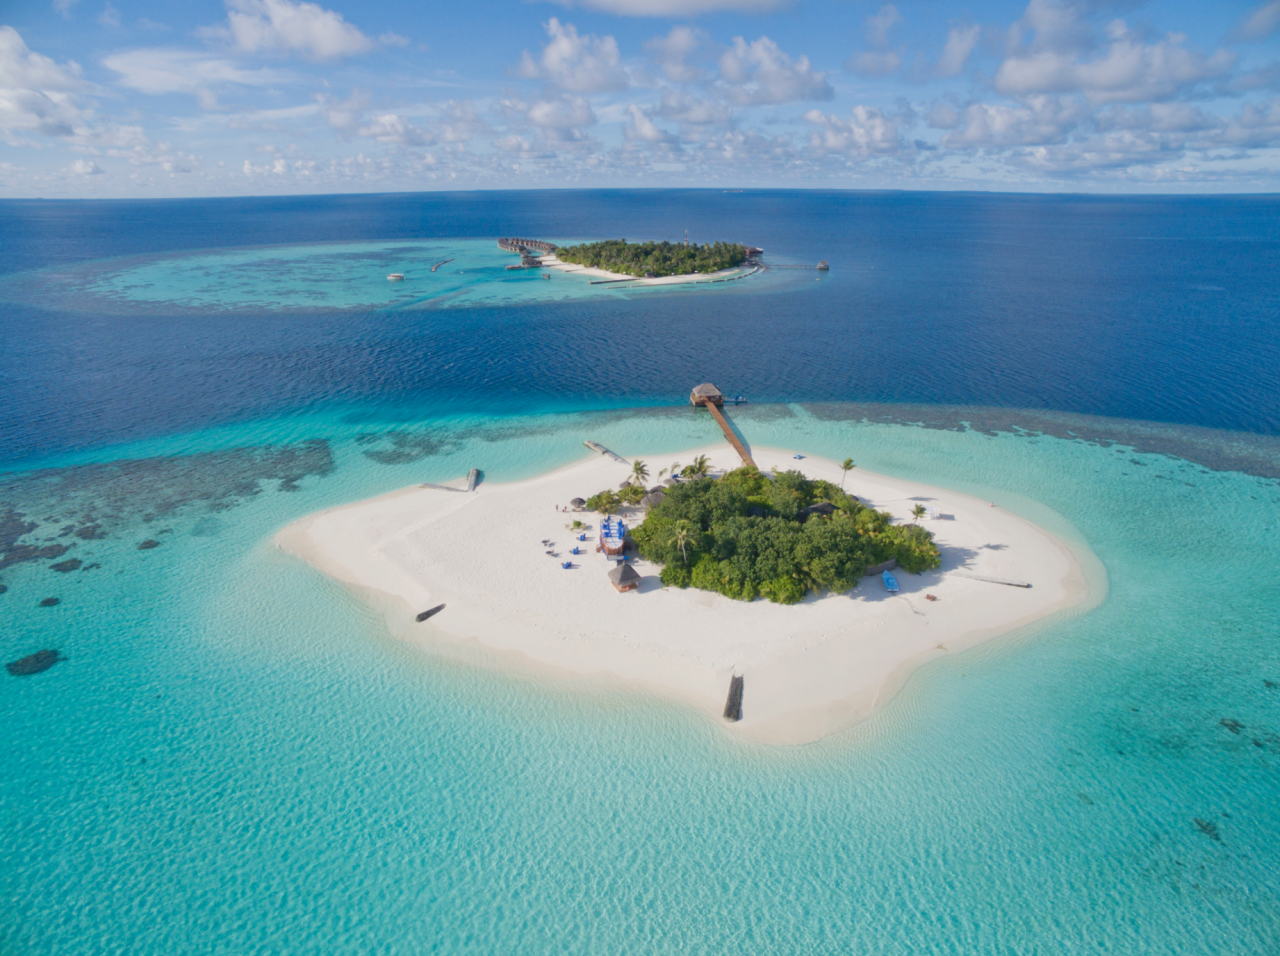 """<p><span>How about escaping to your own private island on the Maldives with your love? Lonubo Island is 500 metres away from Maafushivaru, another island in this romantic, white sand paradise. Lonubo is yours from 4.30pm until 9.30am the following day, and rooms feature king-sized beds, rain showers and a terrace. </span><a rel=""""nofollow"""" href=""""http://www.kuoni.co.uk/""""><span>Kuoni</span></a><span> has seven nights full board at the 5* Maafushivaru from £2,323pp including flights. To book, quote IO0625. [Photo: Kuoni]</span> </p>"""